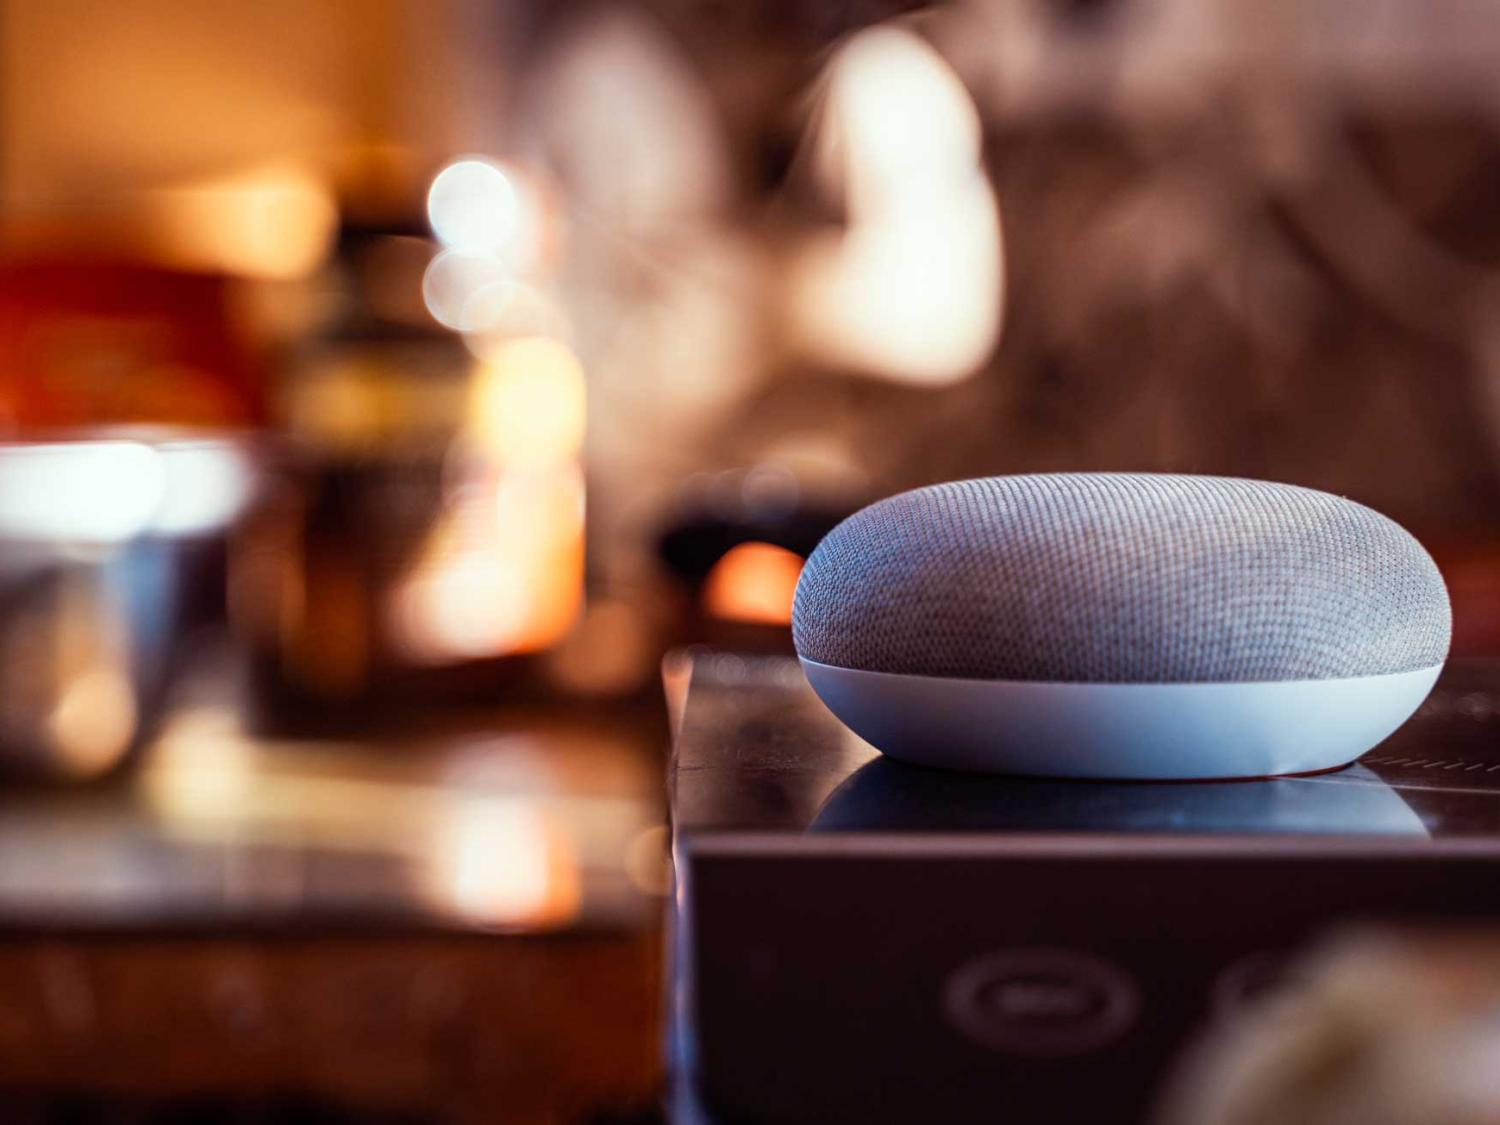 A Google Home smart device sits on a surface.